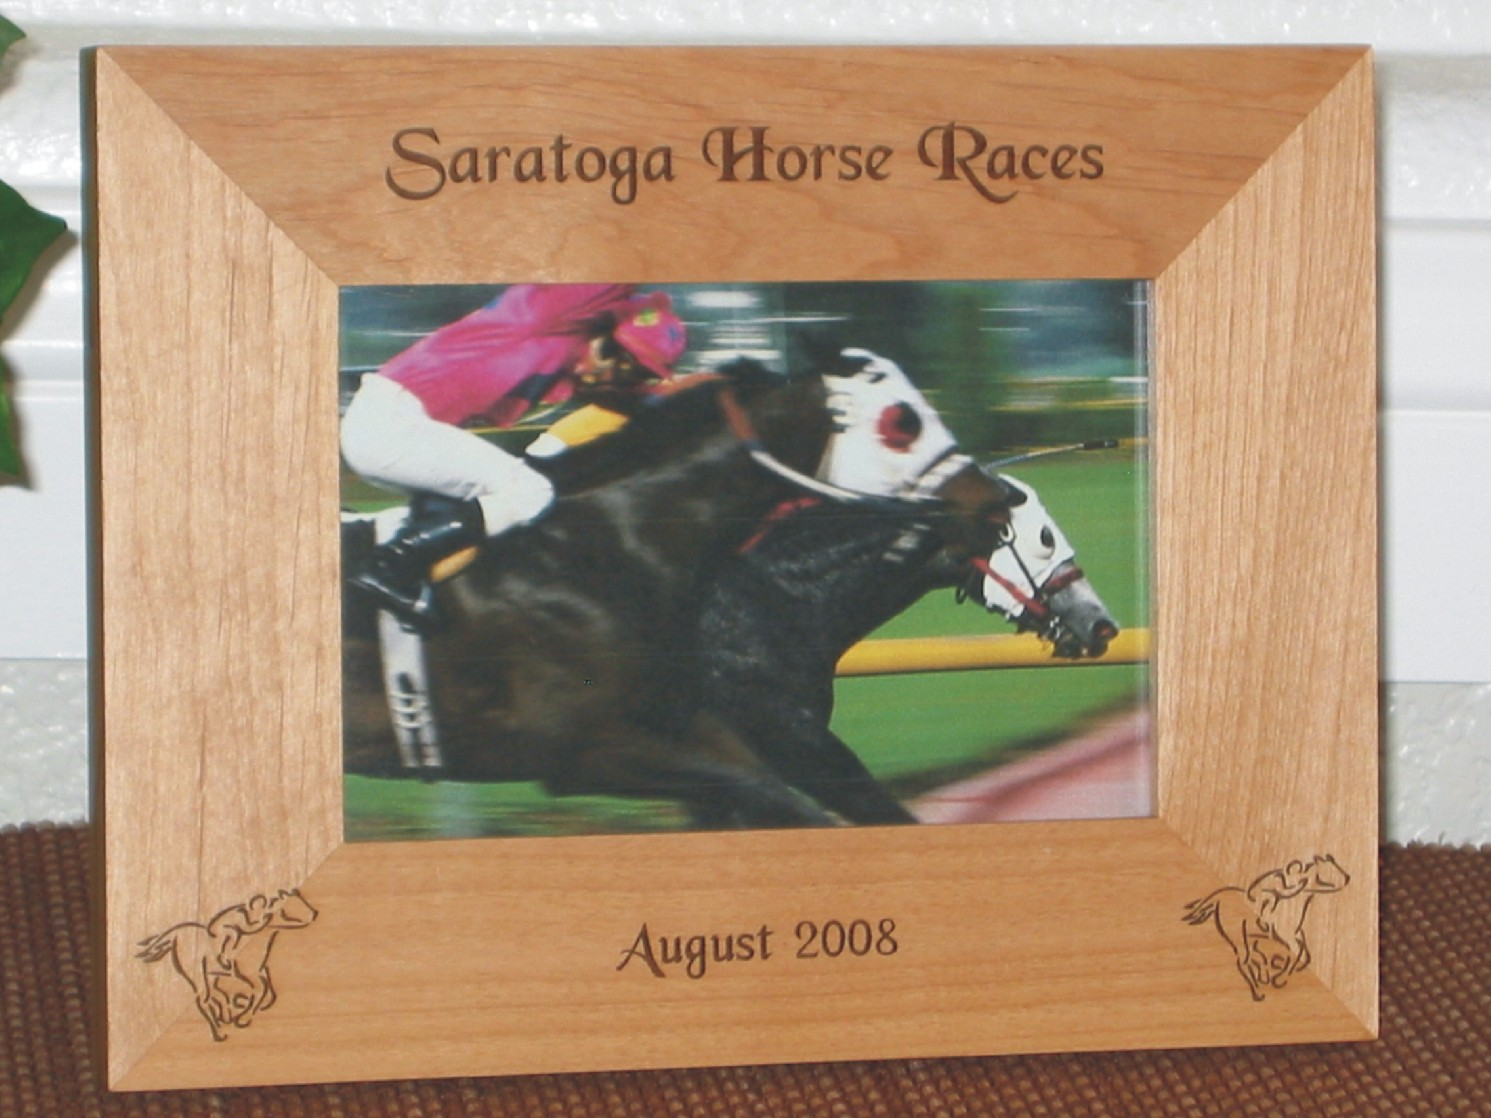 Horse picture frames personalized horse picture frames horse racing picture frame personalized frame laser engraved racing horses jeuxipadfo Gallery